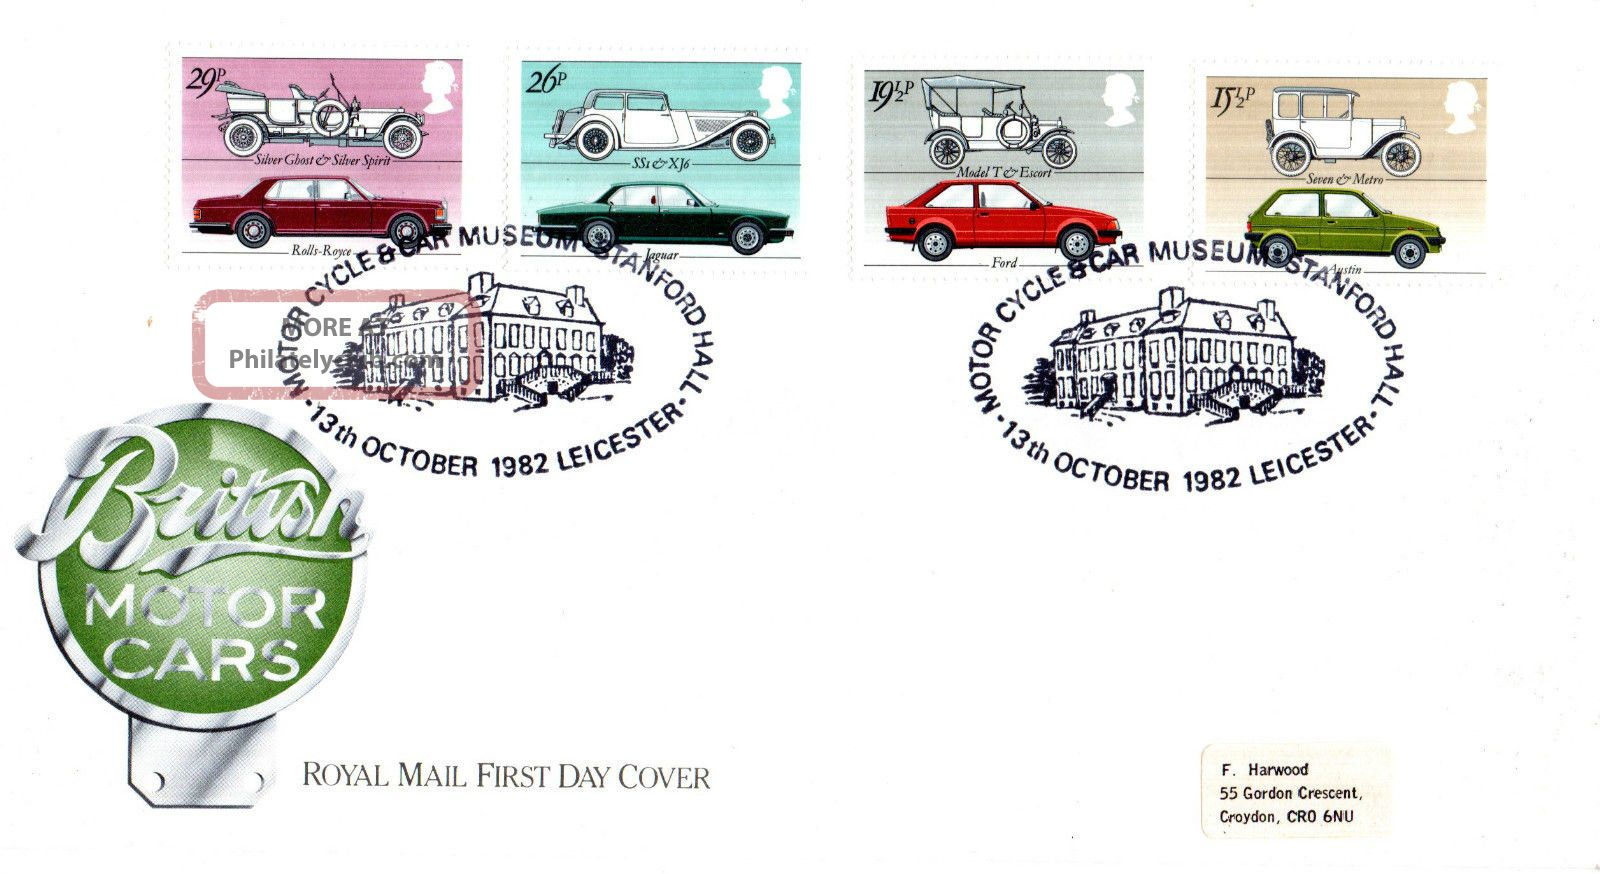 13 October 1982 British Motor Cars Royal Mail First Day Cover Stanford Hall Shs Transportation photo